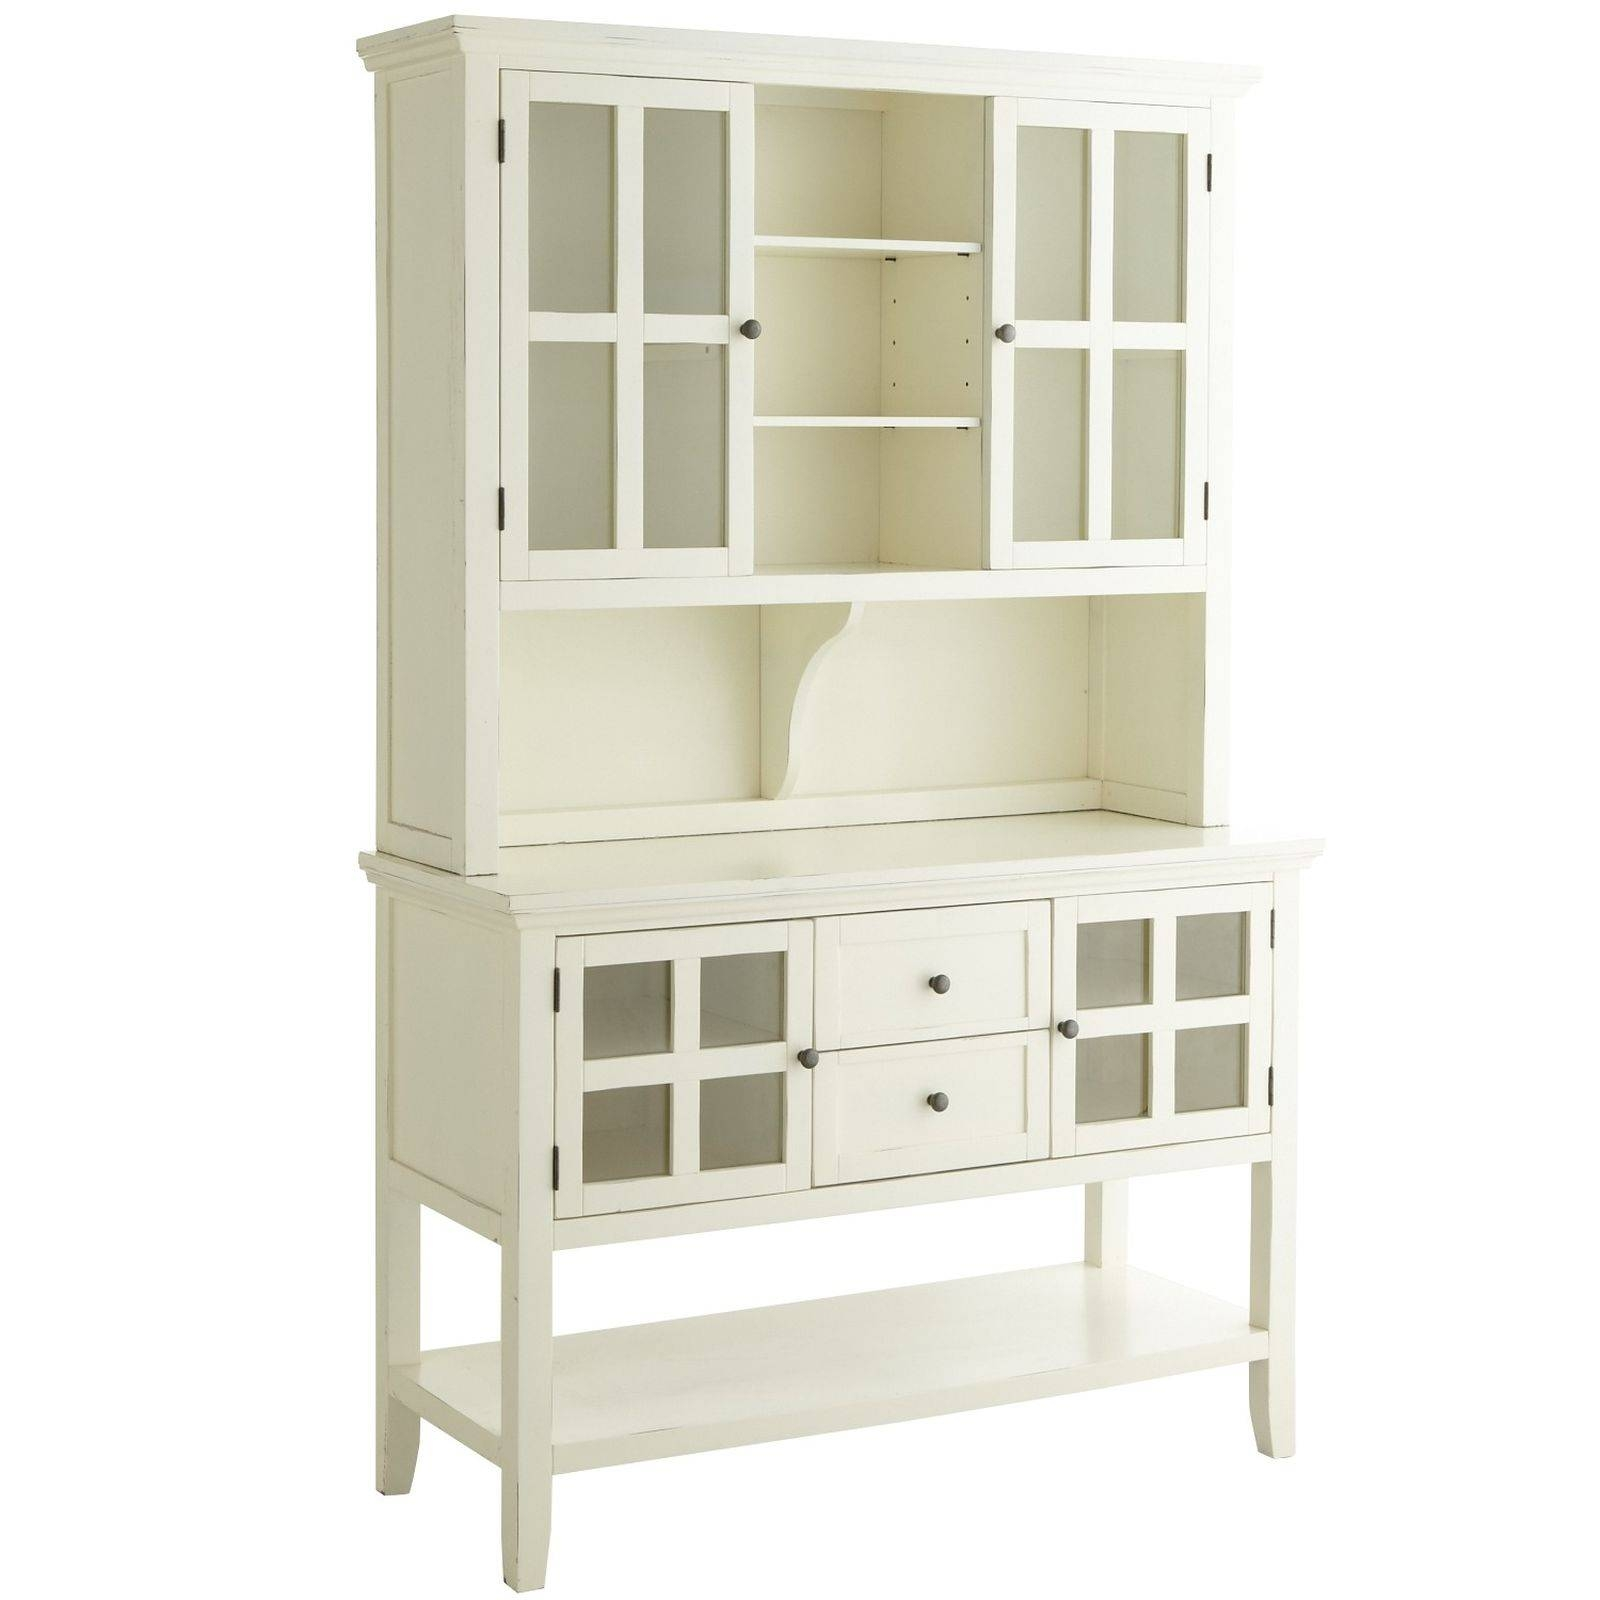 Sideboards: Glamorous Small Buffet Hutch Small Desks With Hutch Pertaining To Kitchen Sideboards White (#20 of 20)